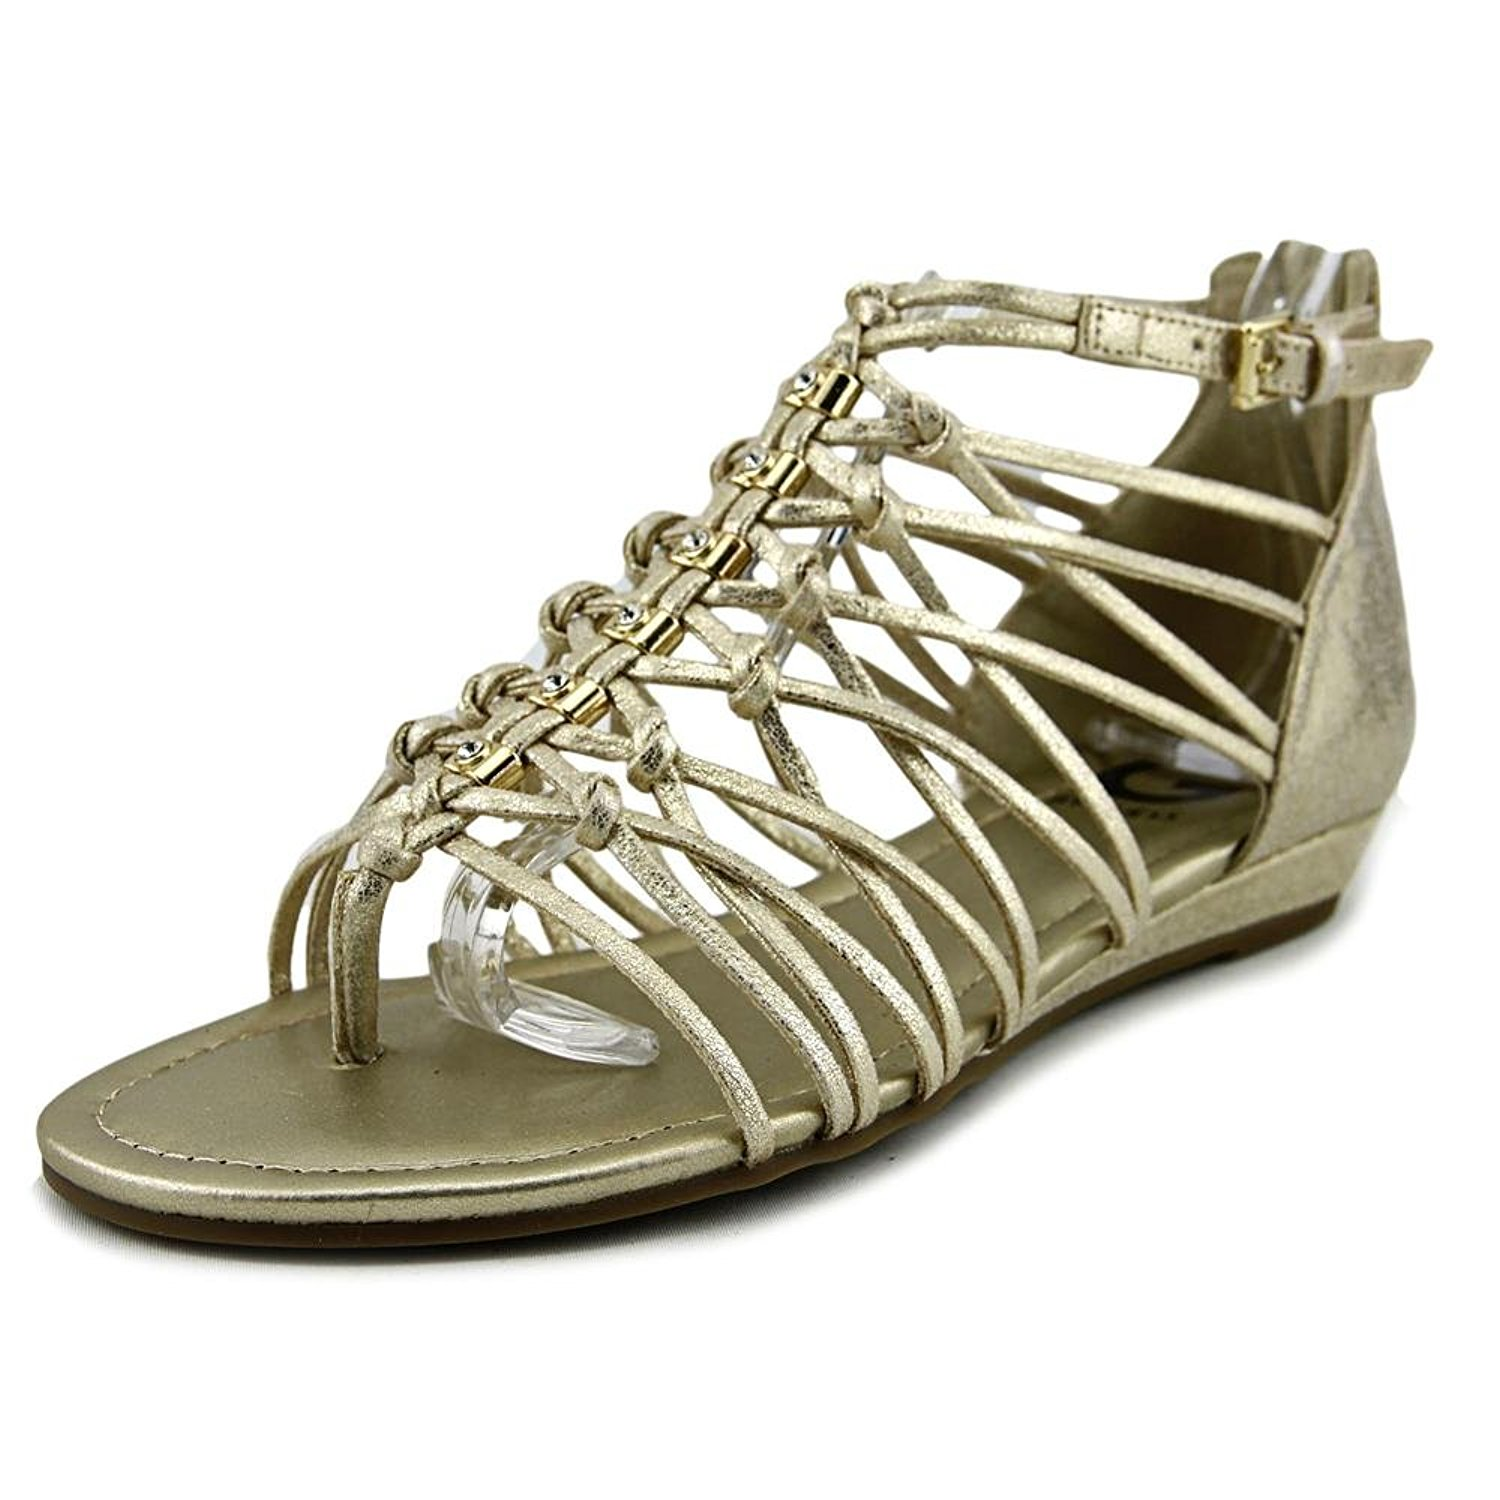 d81163b38343 G by Guess Womens Jonsie Open Toe Casual Strappy Sandals